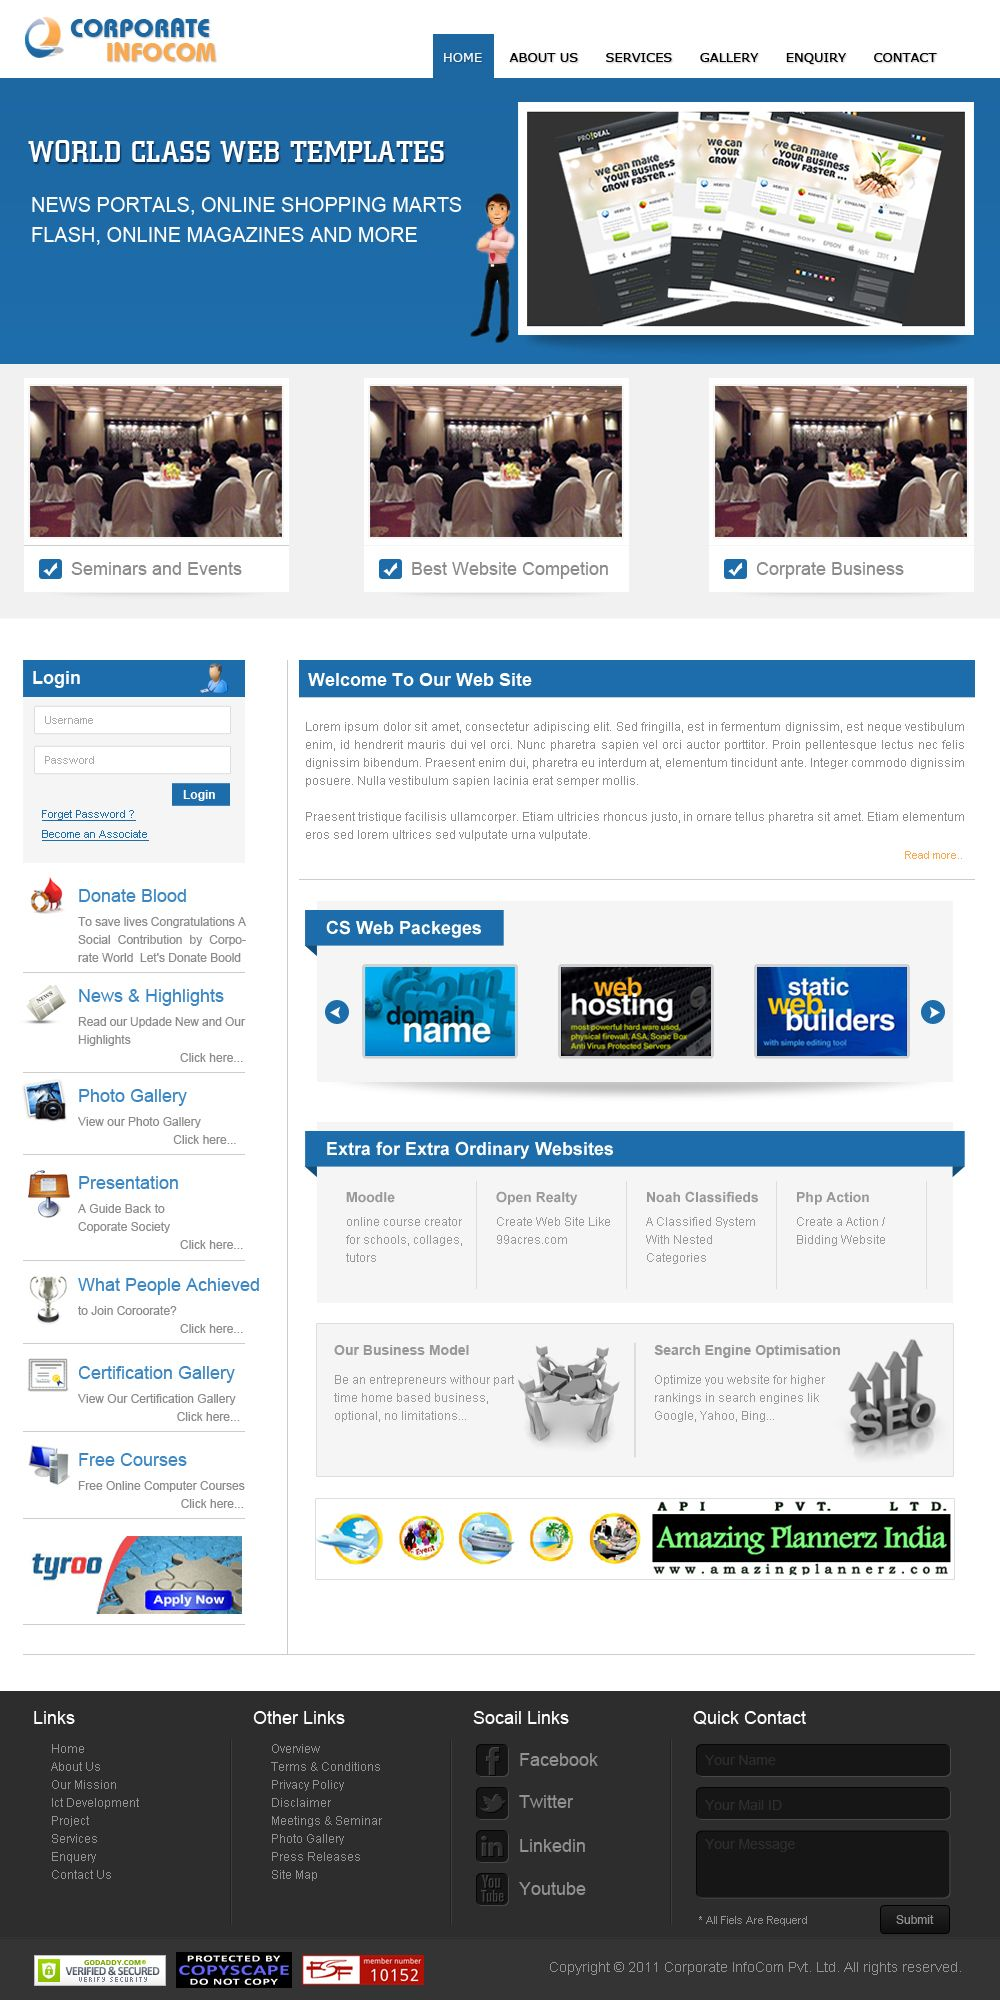 This Website Layout Design For Demo Template For Corporate Infocom